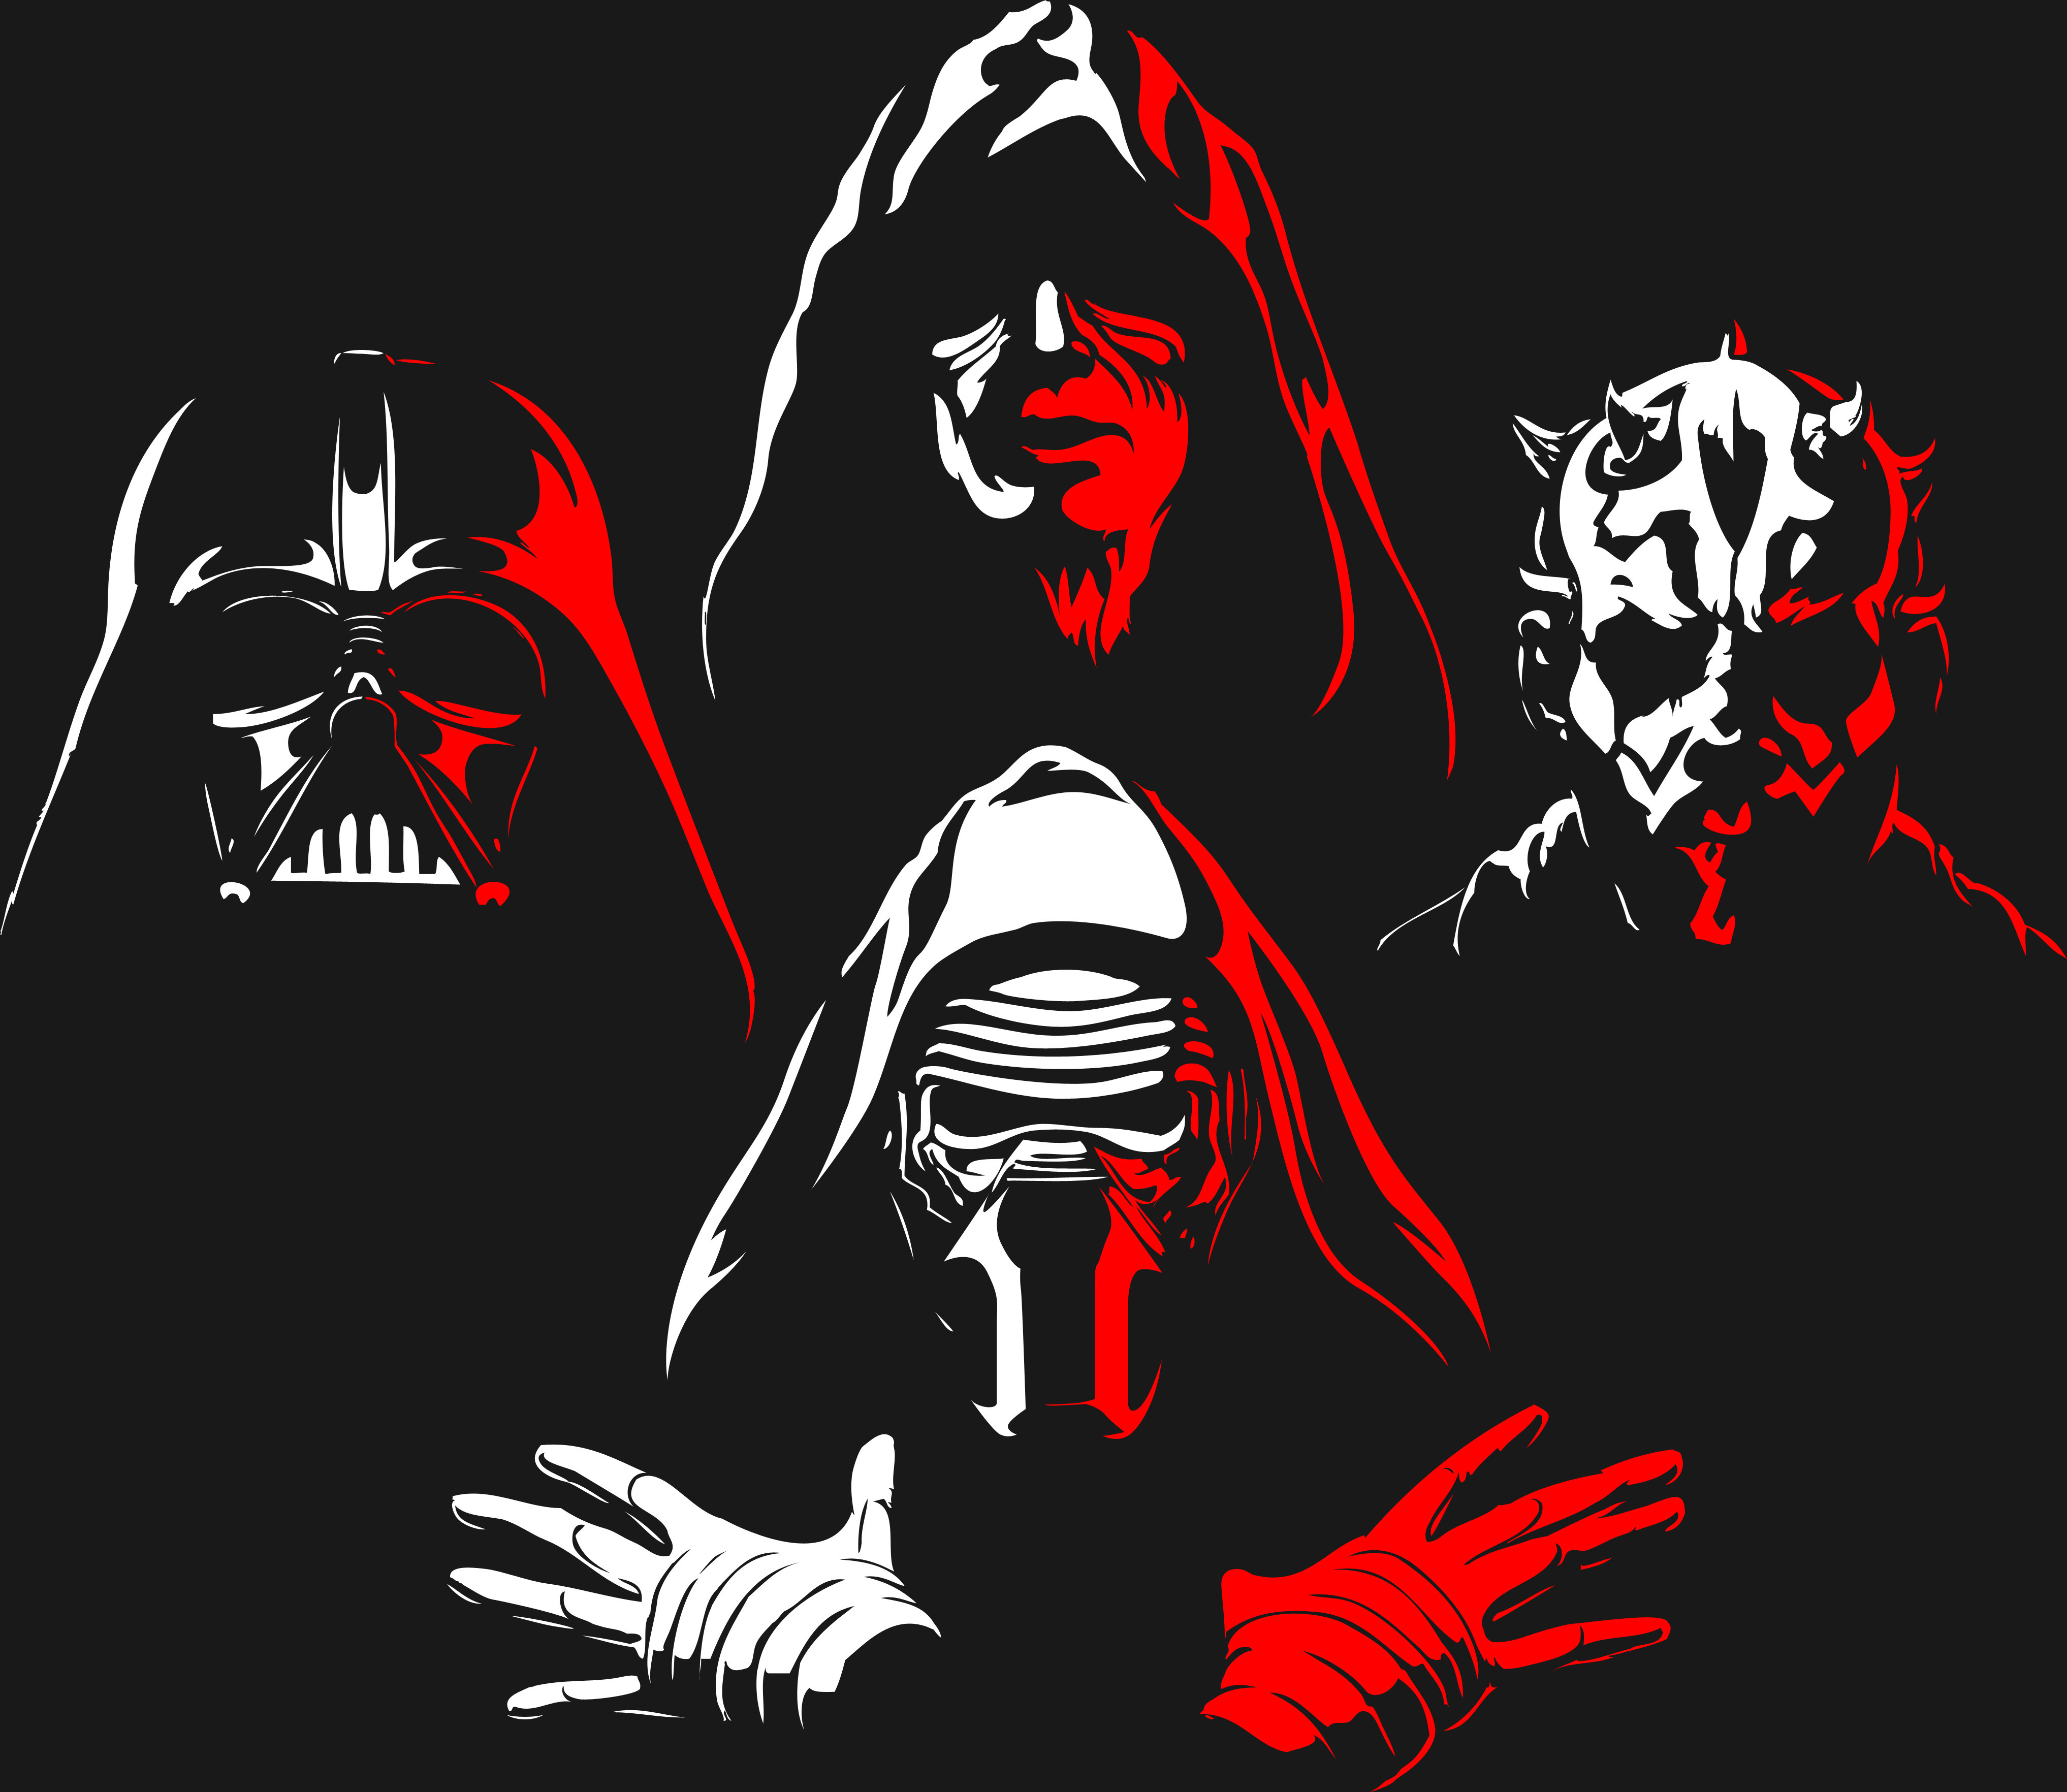 152 Sith Star Wars Hd Wallpapers Background Images Wallpaper Abyss